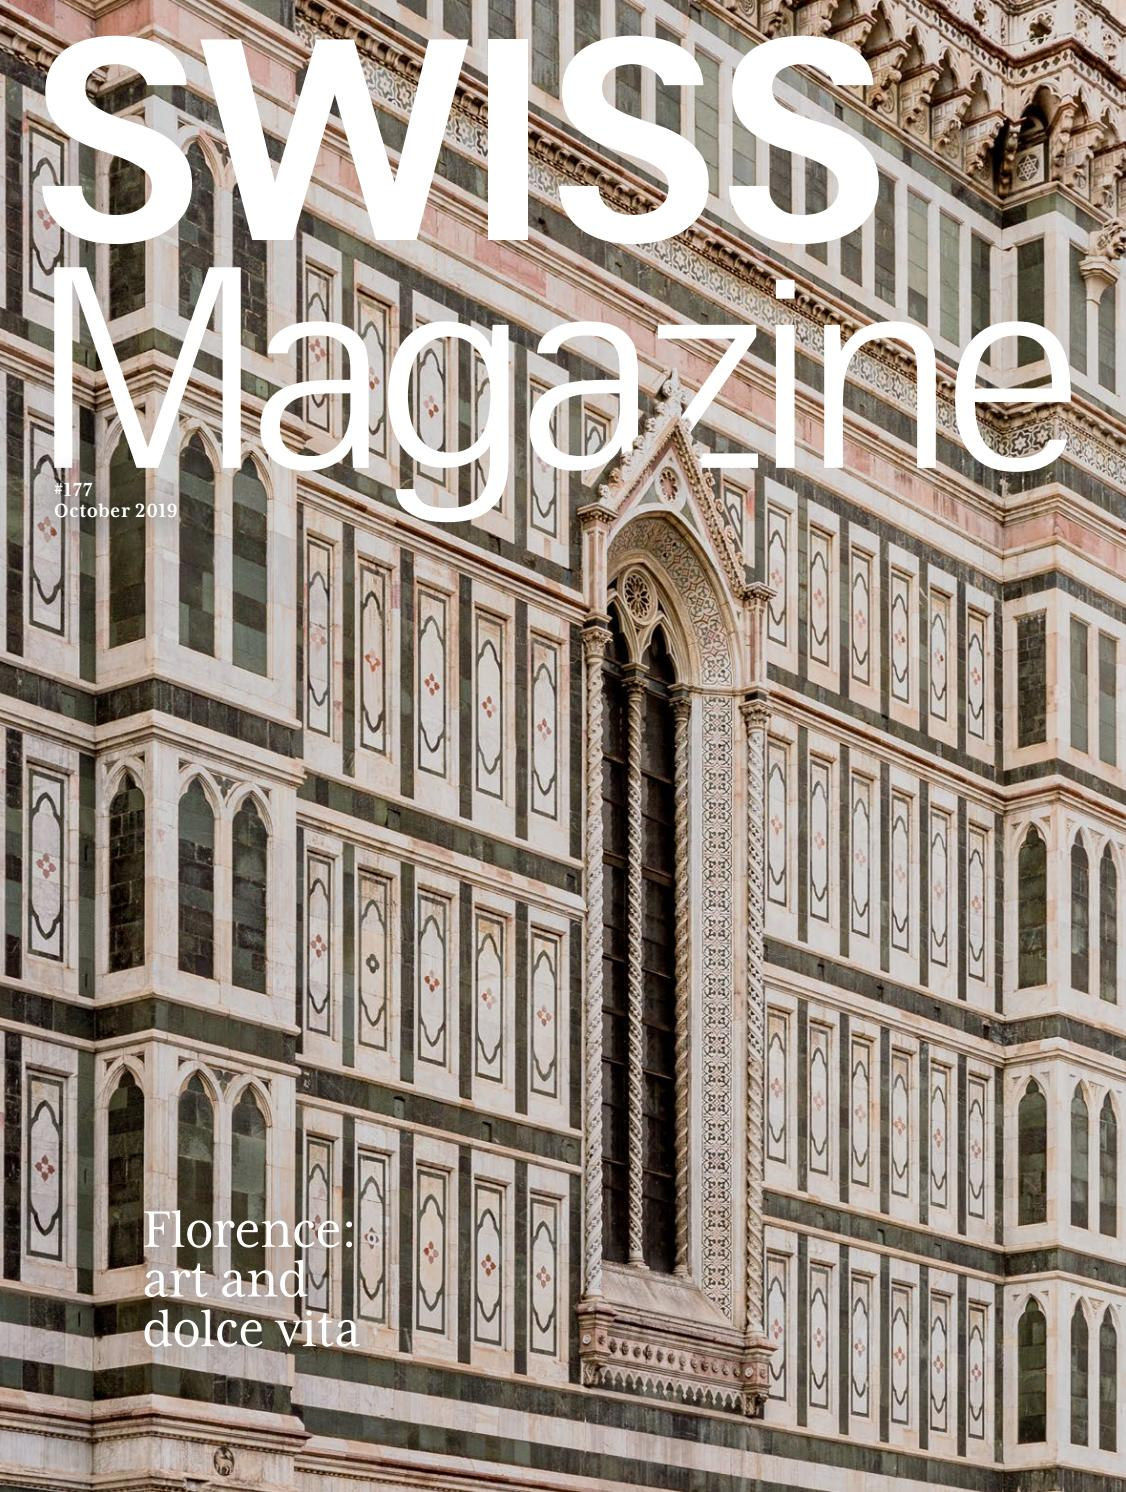 Swiss Magazine October 2019 Florence By Swiss International Air Lines Issuu